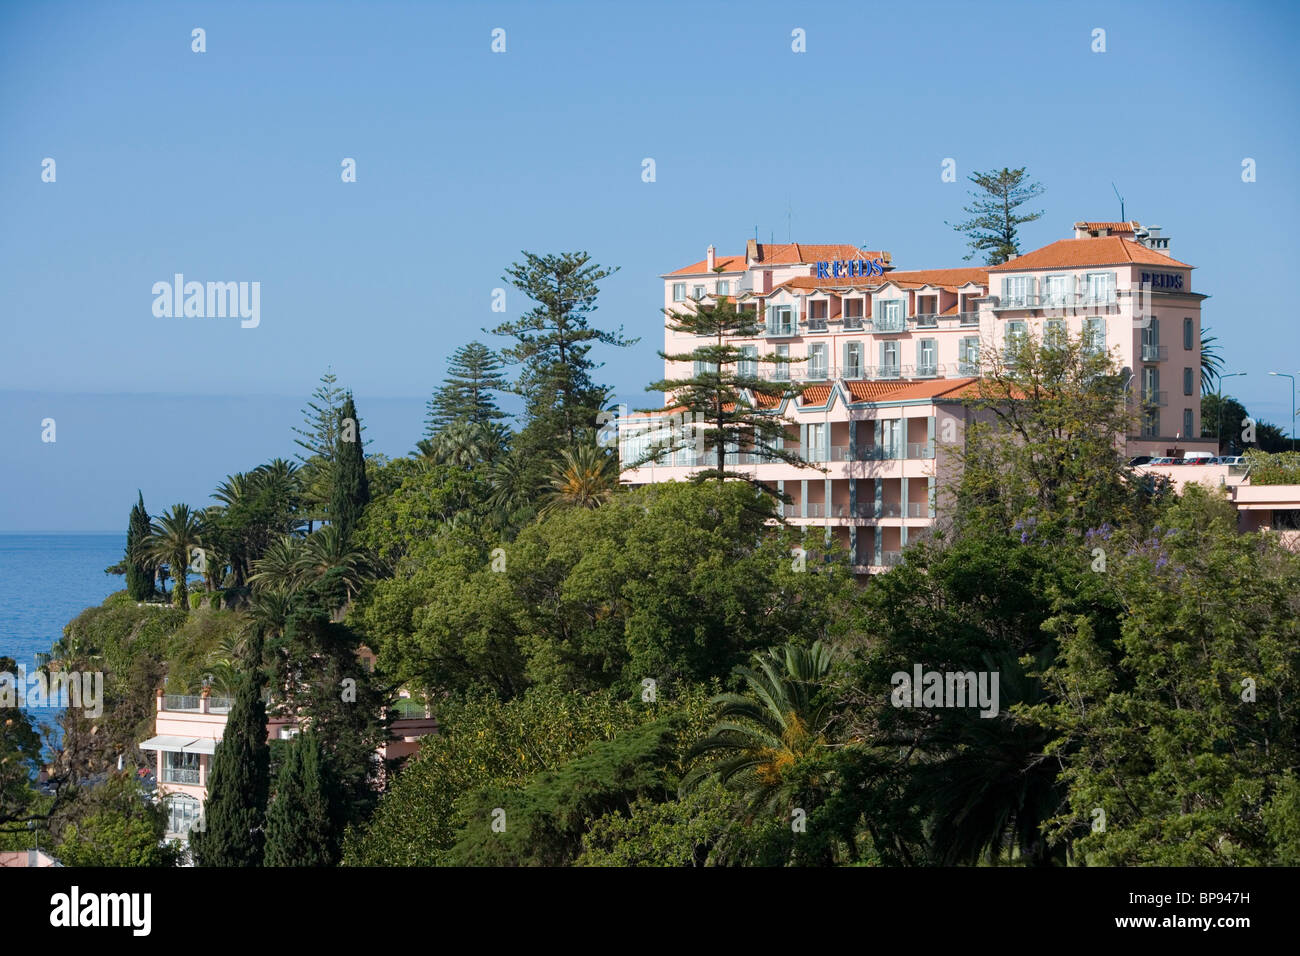 reid 39 s palace hotel funchal madeira portugal stock photo royalty free image 30933717 alamy. Black Bedroom Furniture Sets. Home Design Ideas